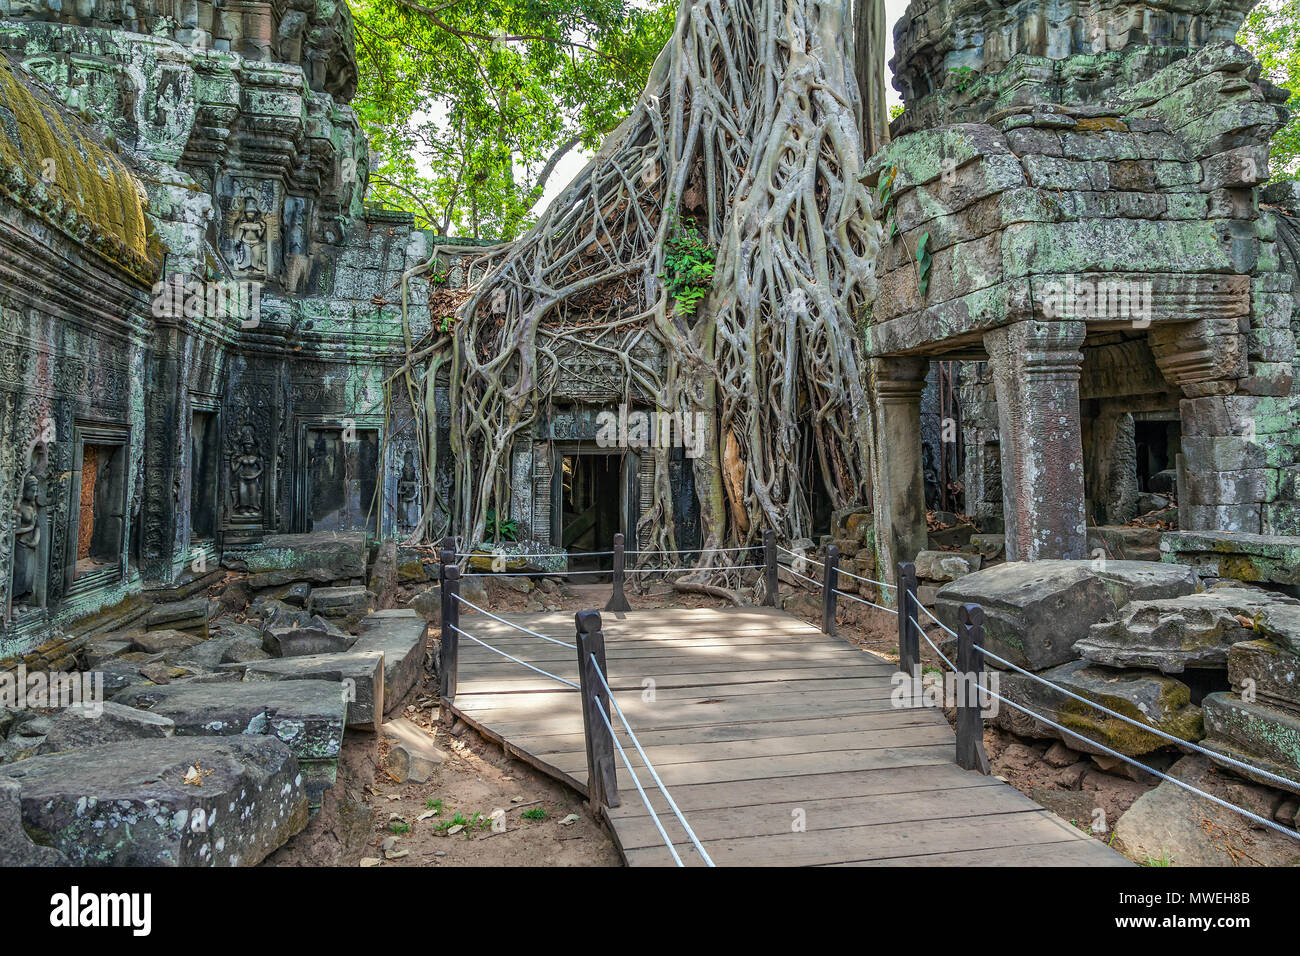 Ruins of the ancient Khmer temple of Ta Prohm. - Stock Image